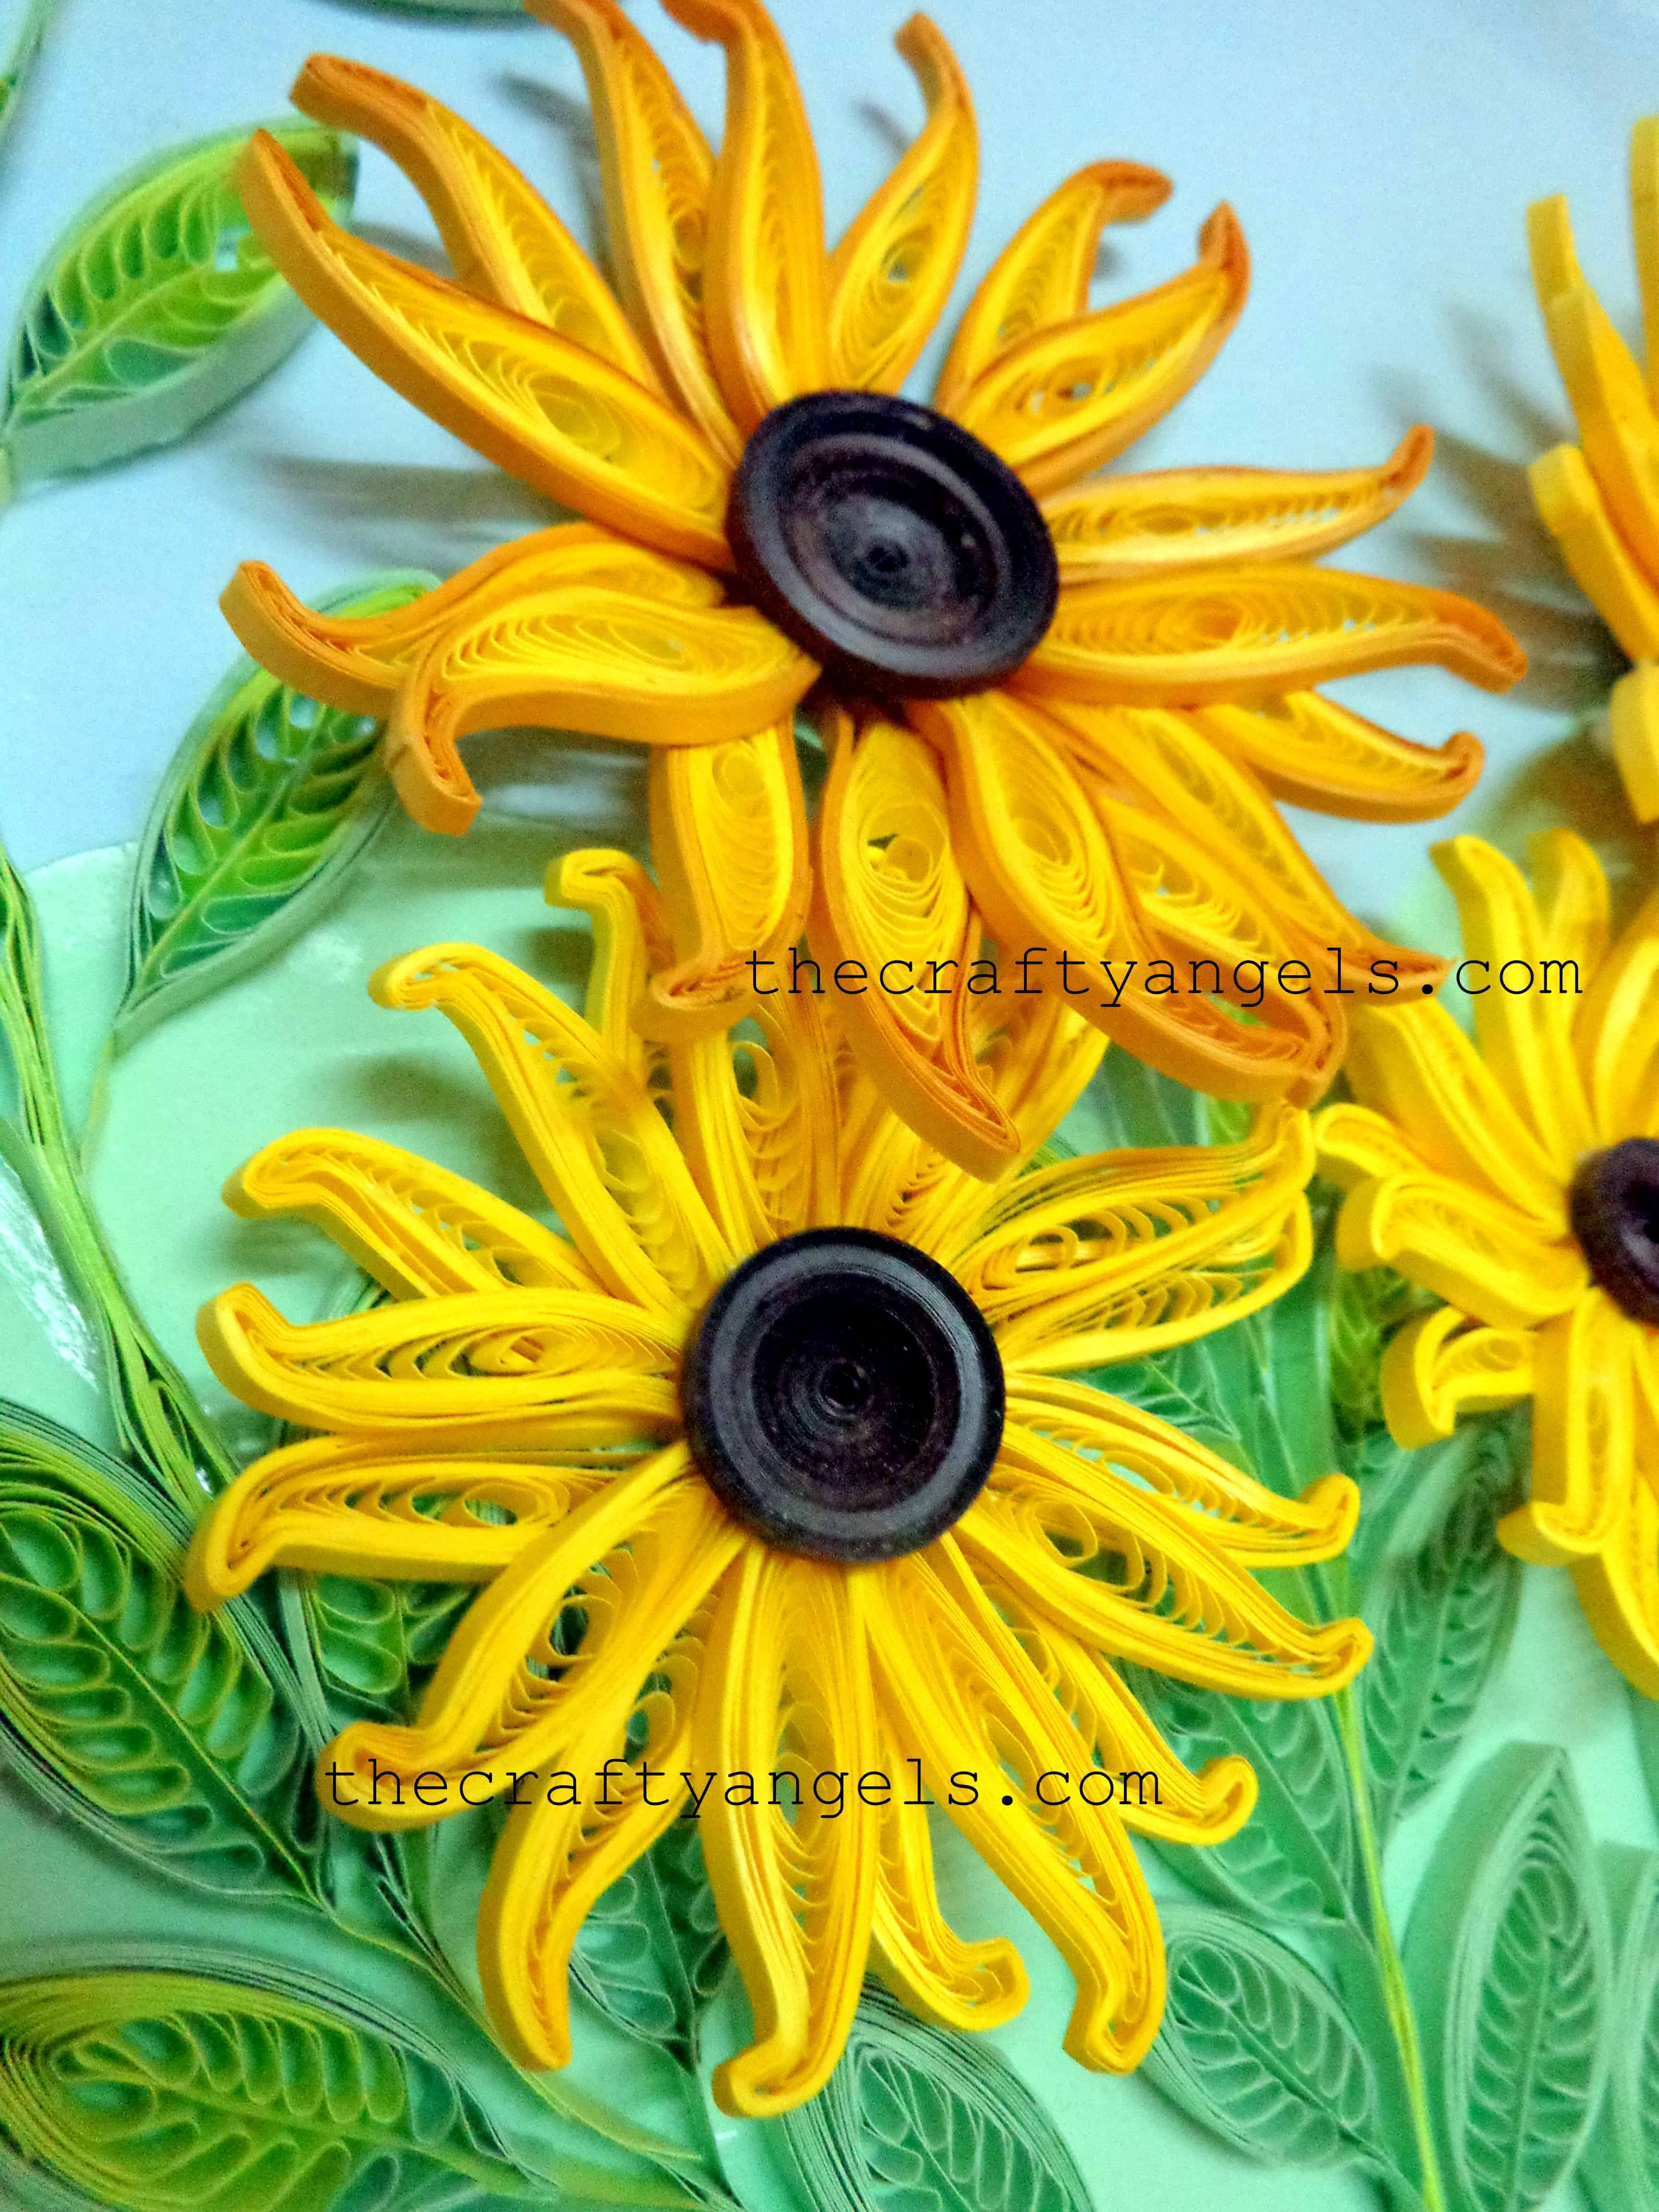 Quilled sunflowers with button middles